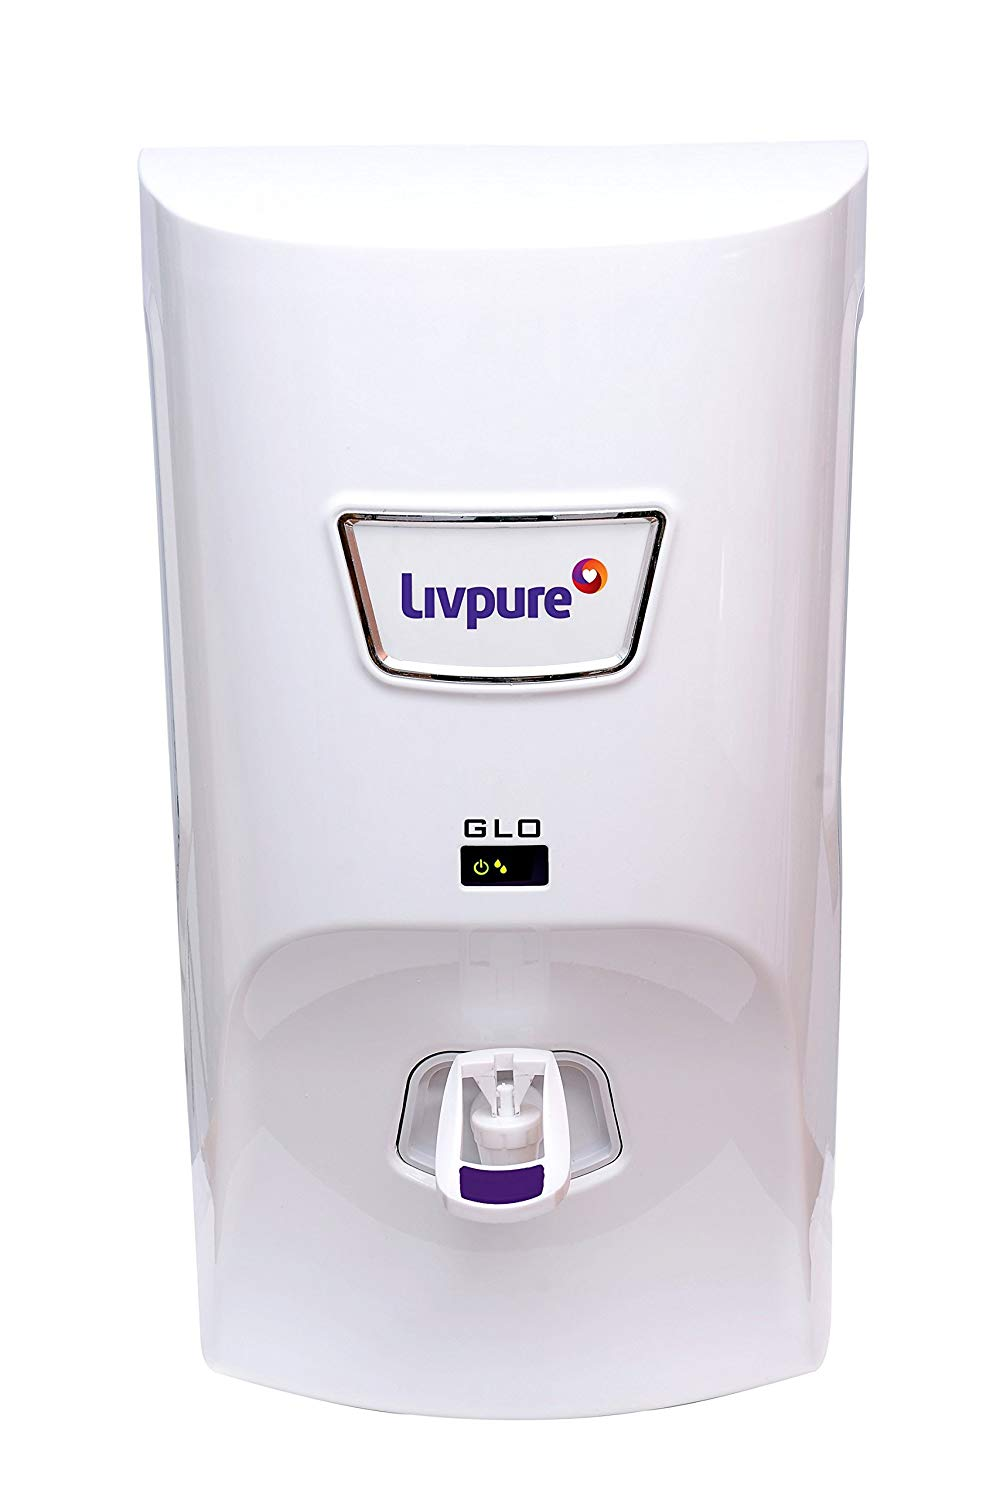 Livpure Glo 7 RO + UV + Mineralizer Water Purifier Photo1